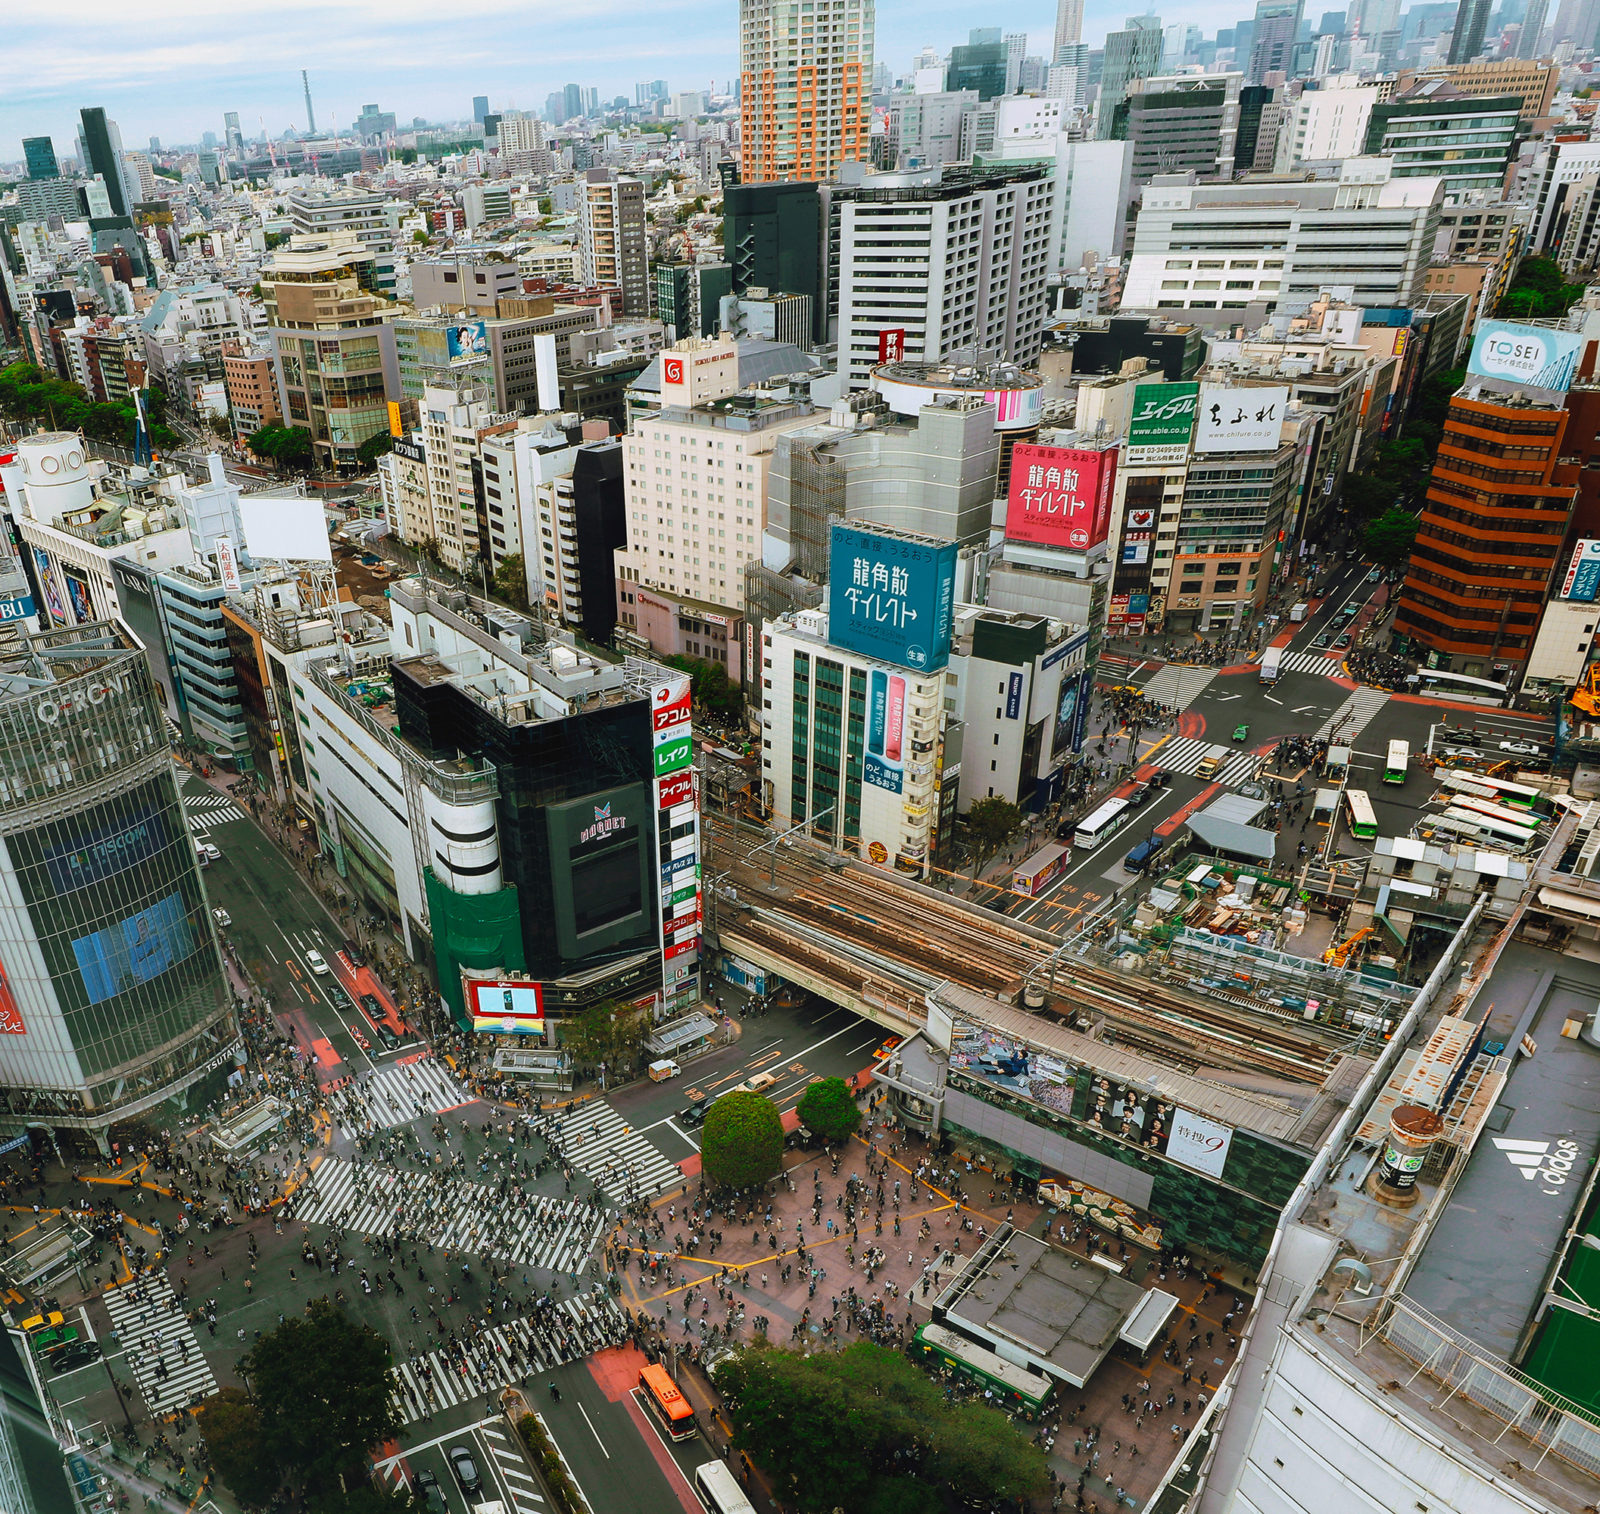 Graphic design and Web, Photography, Branding, Motion Graphics and Video (Shibuya, Tokyo - aerial photo)